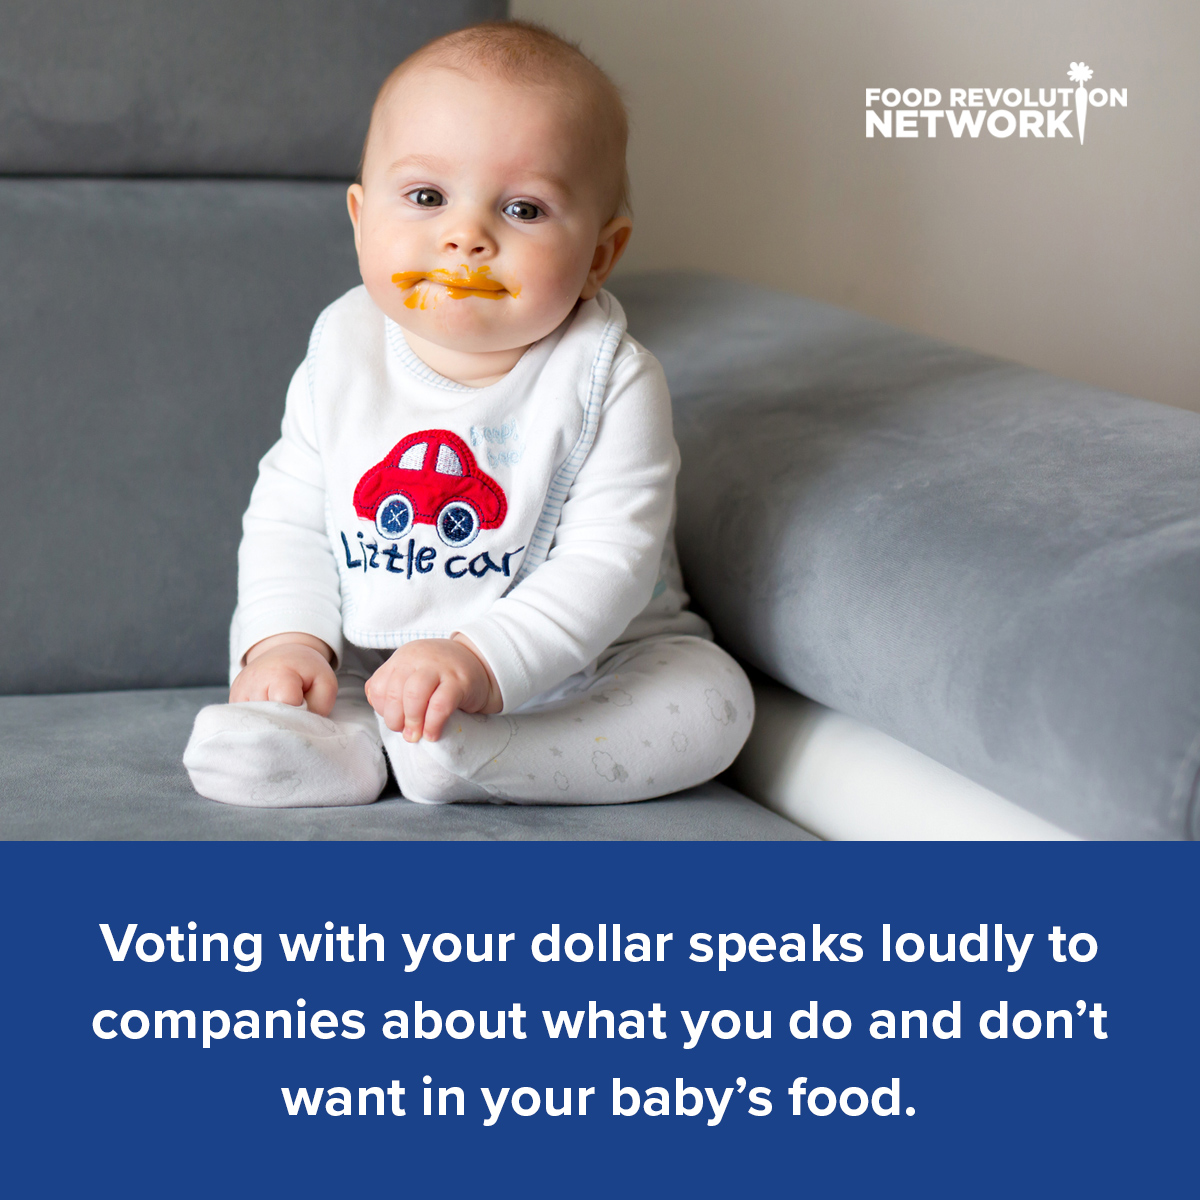 Voting with your dollar speaks loudly to companies about what you do and don't want in your baby's food.